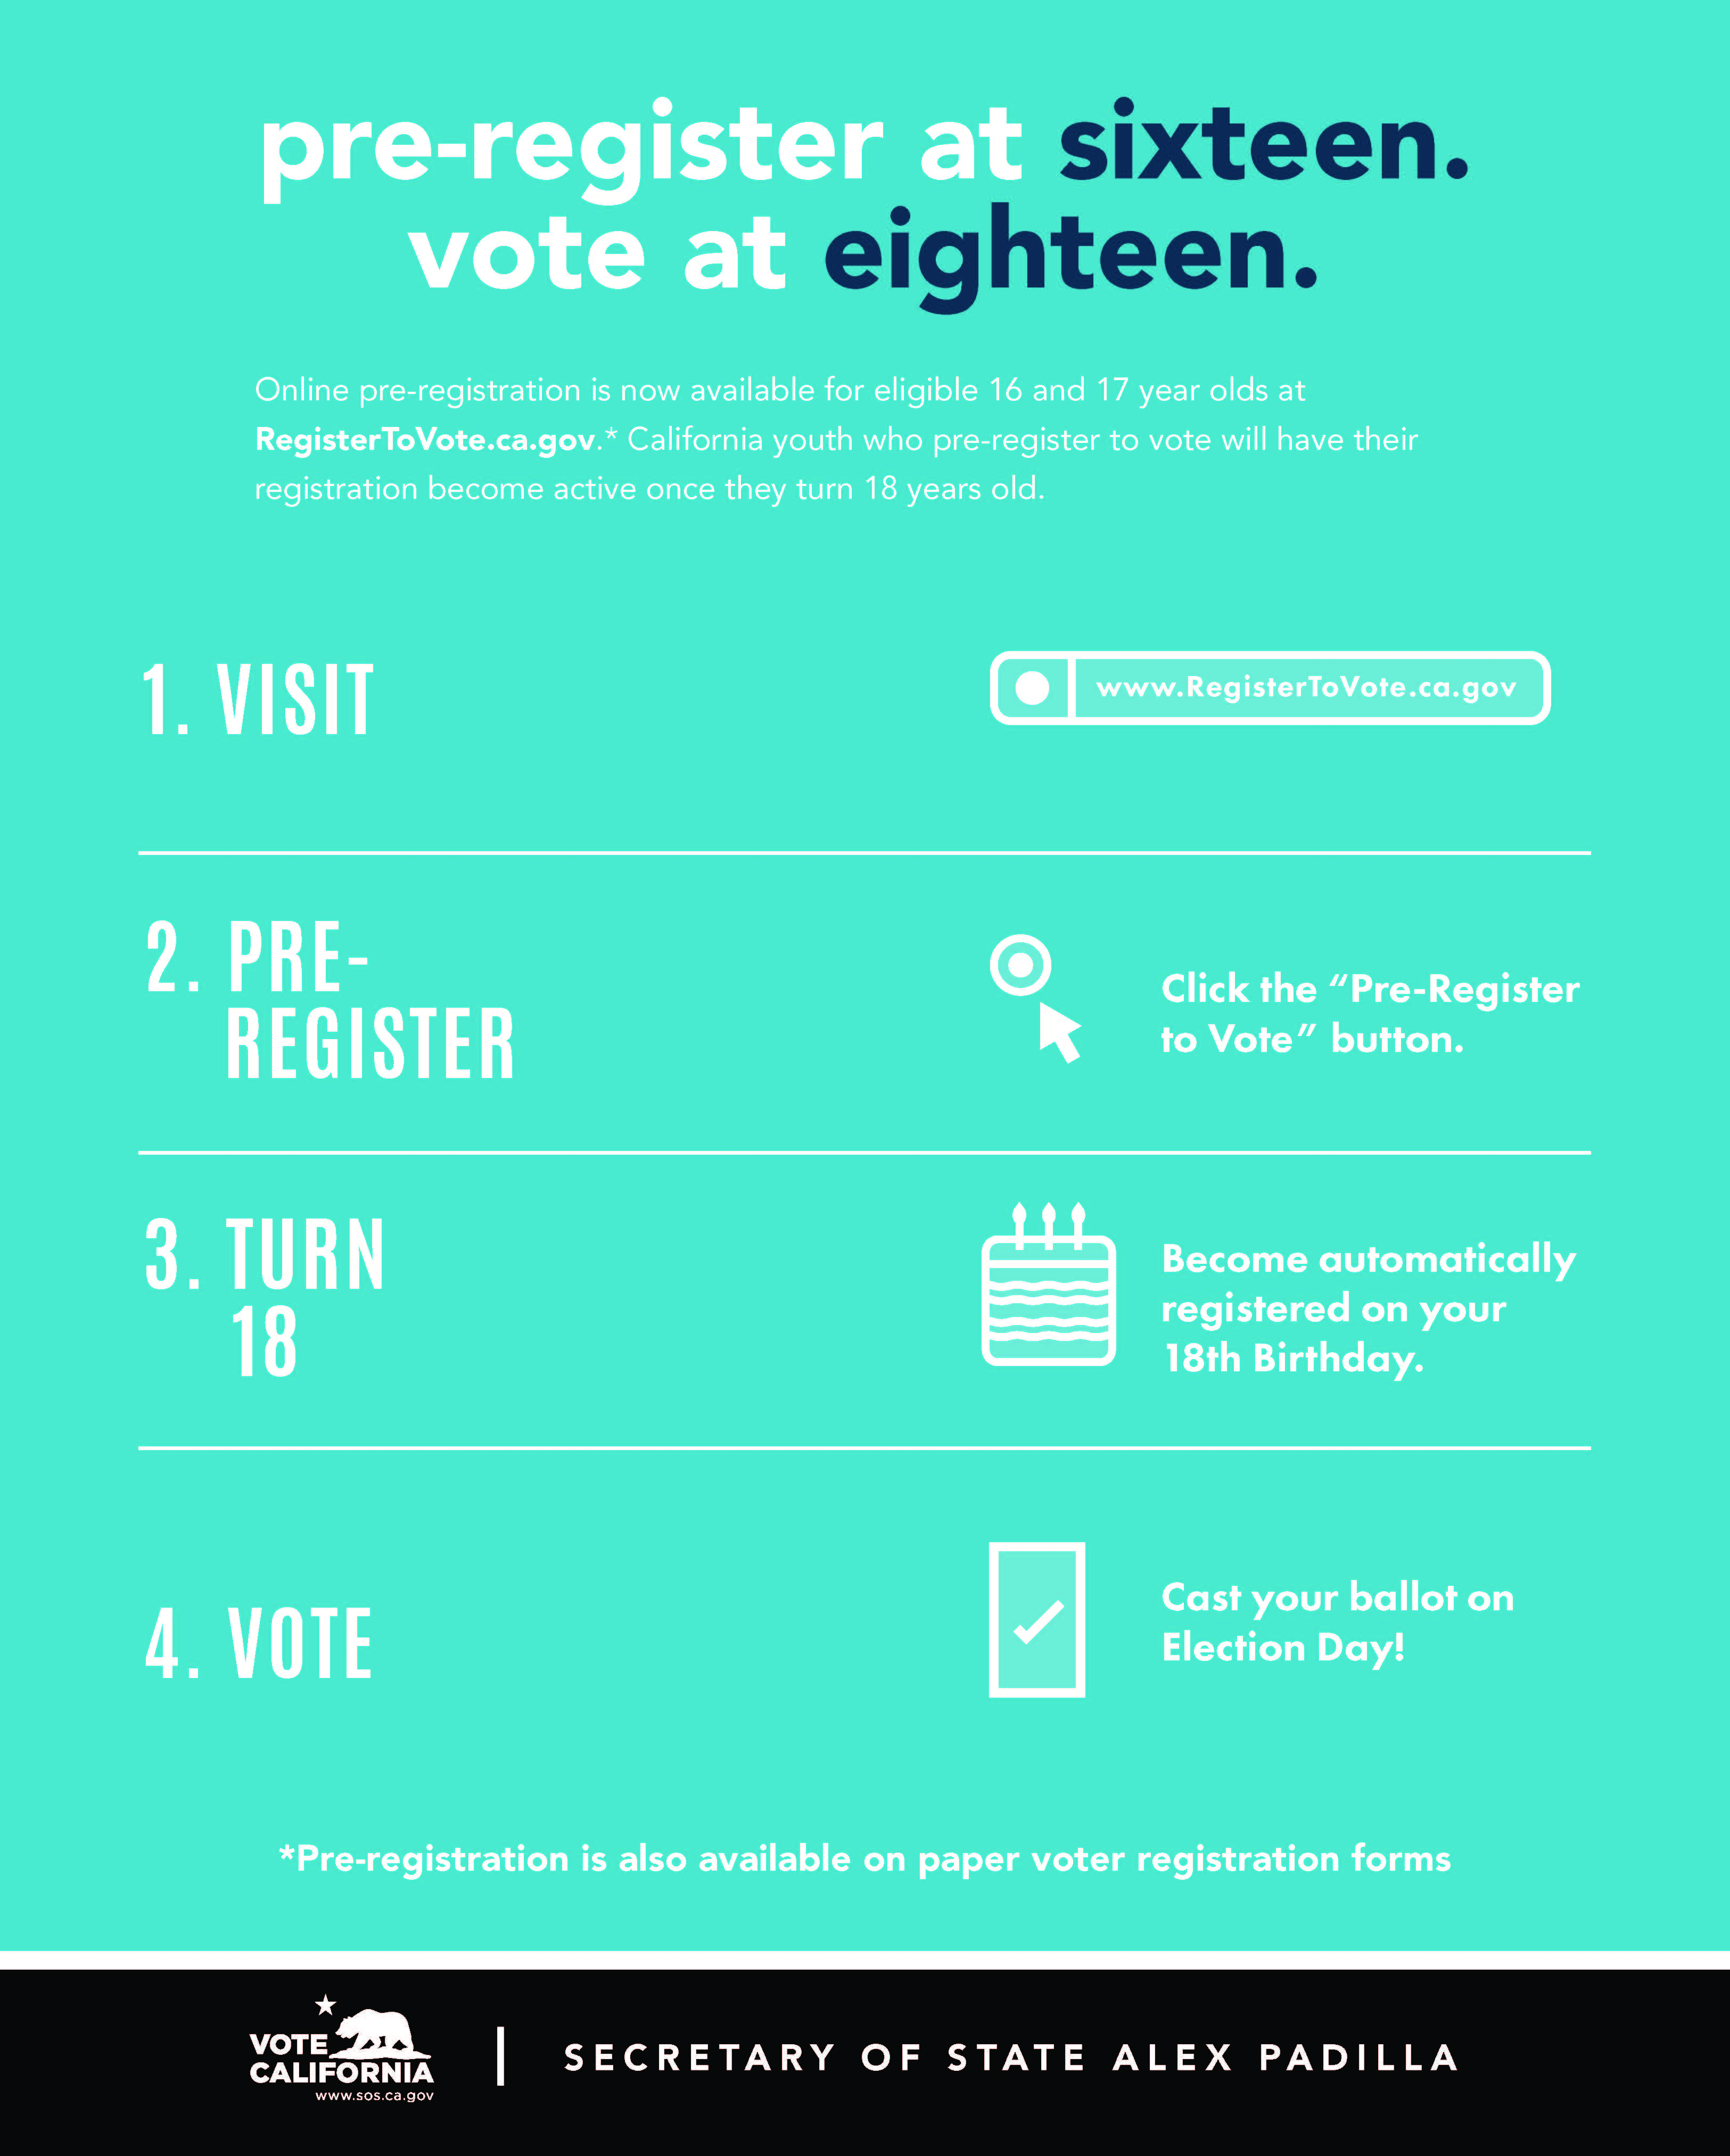 a layout of how to pre-register to vote before you're 18